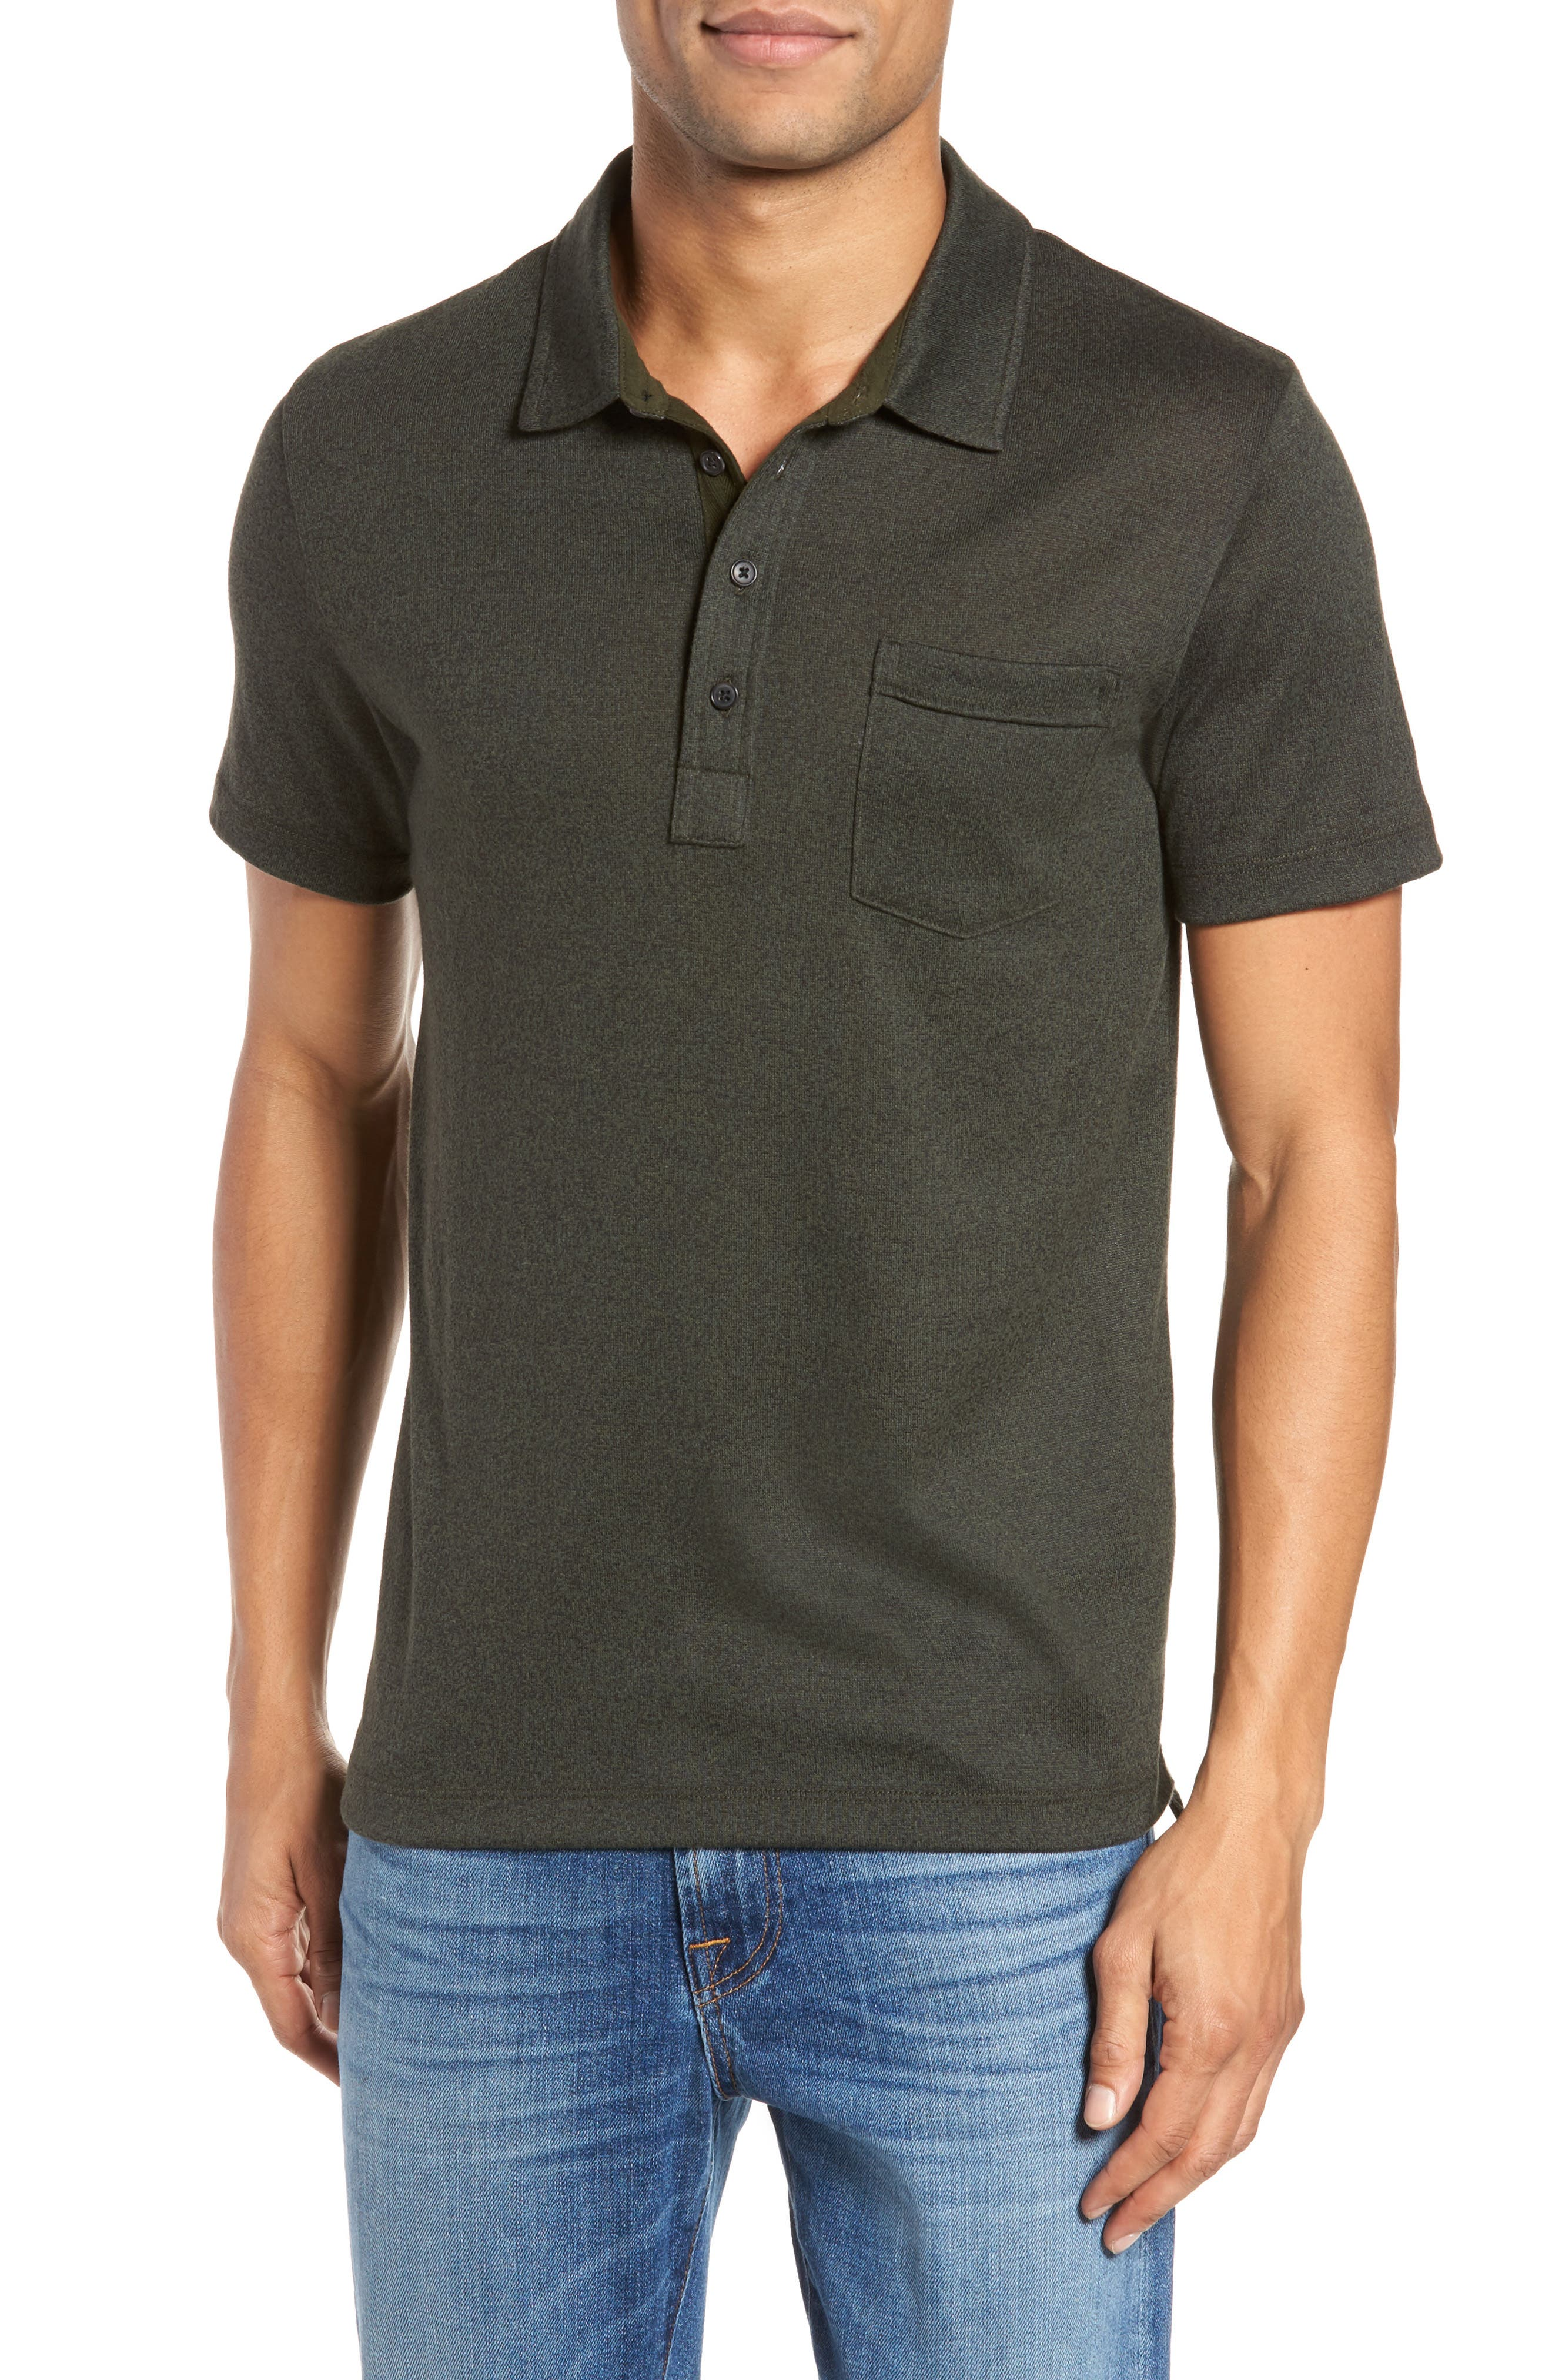 Smith Slim Fit Polo,                             Main thumbnail 1, color,                             Pine Green